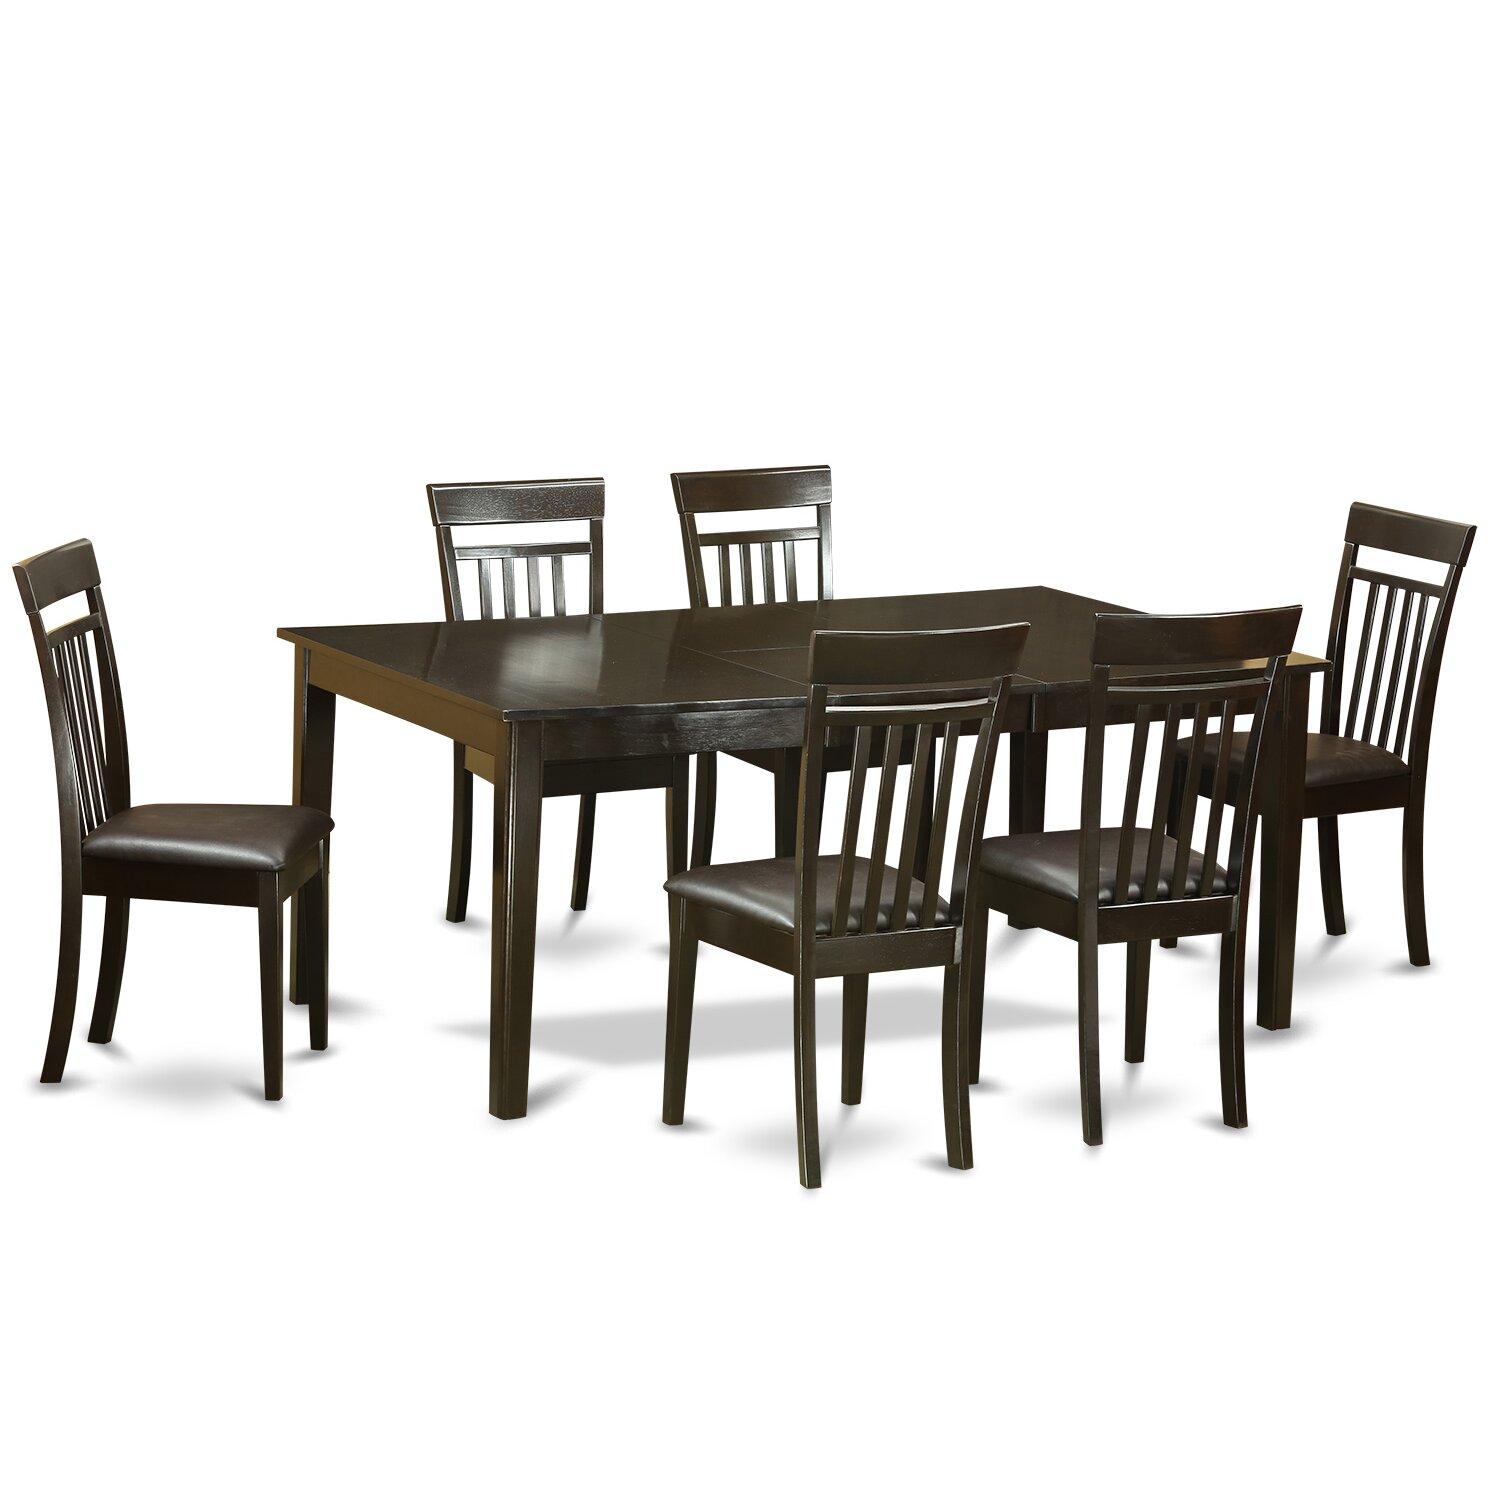 Henley 7 piece dining set wayfair for 6 dining room chairs